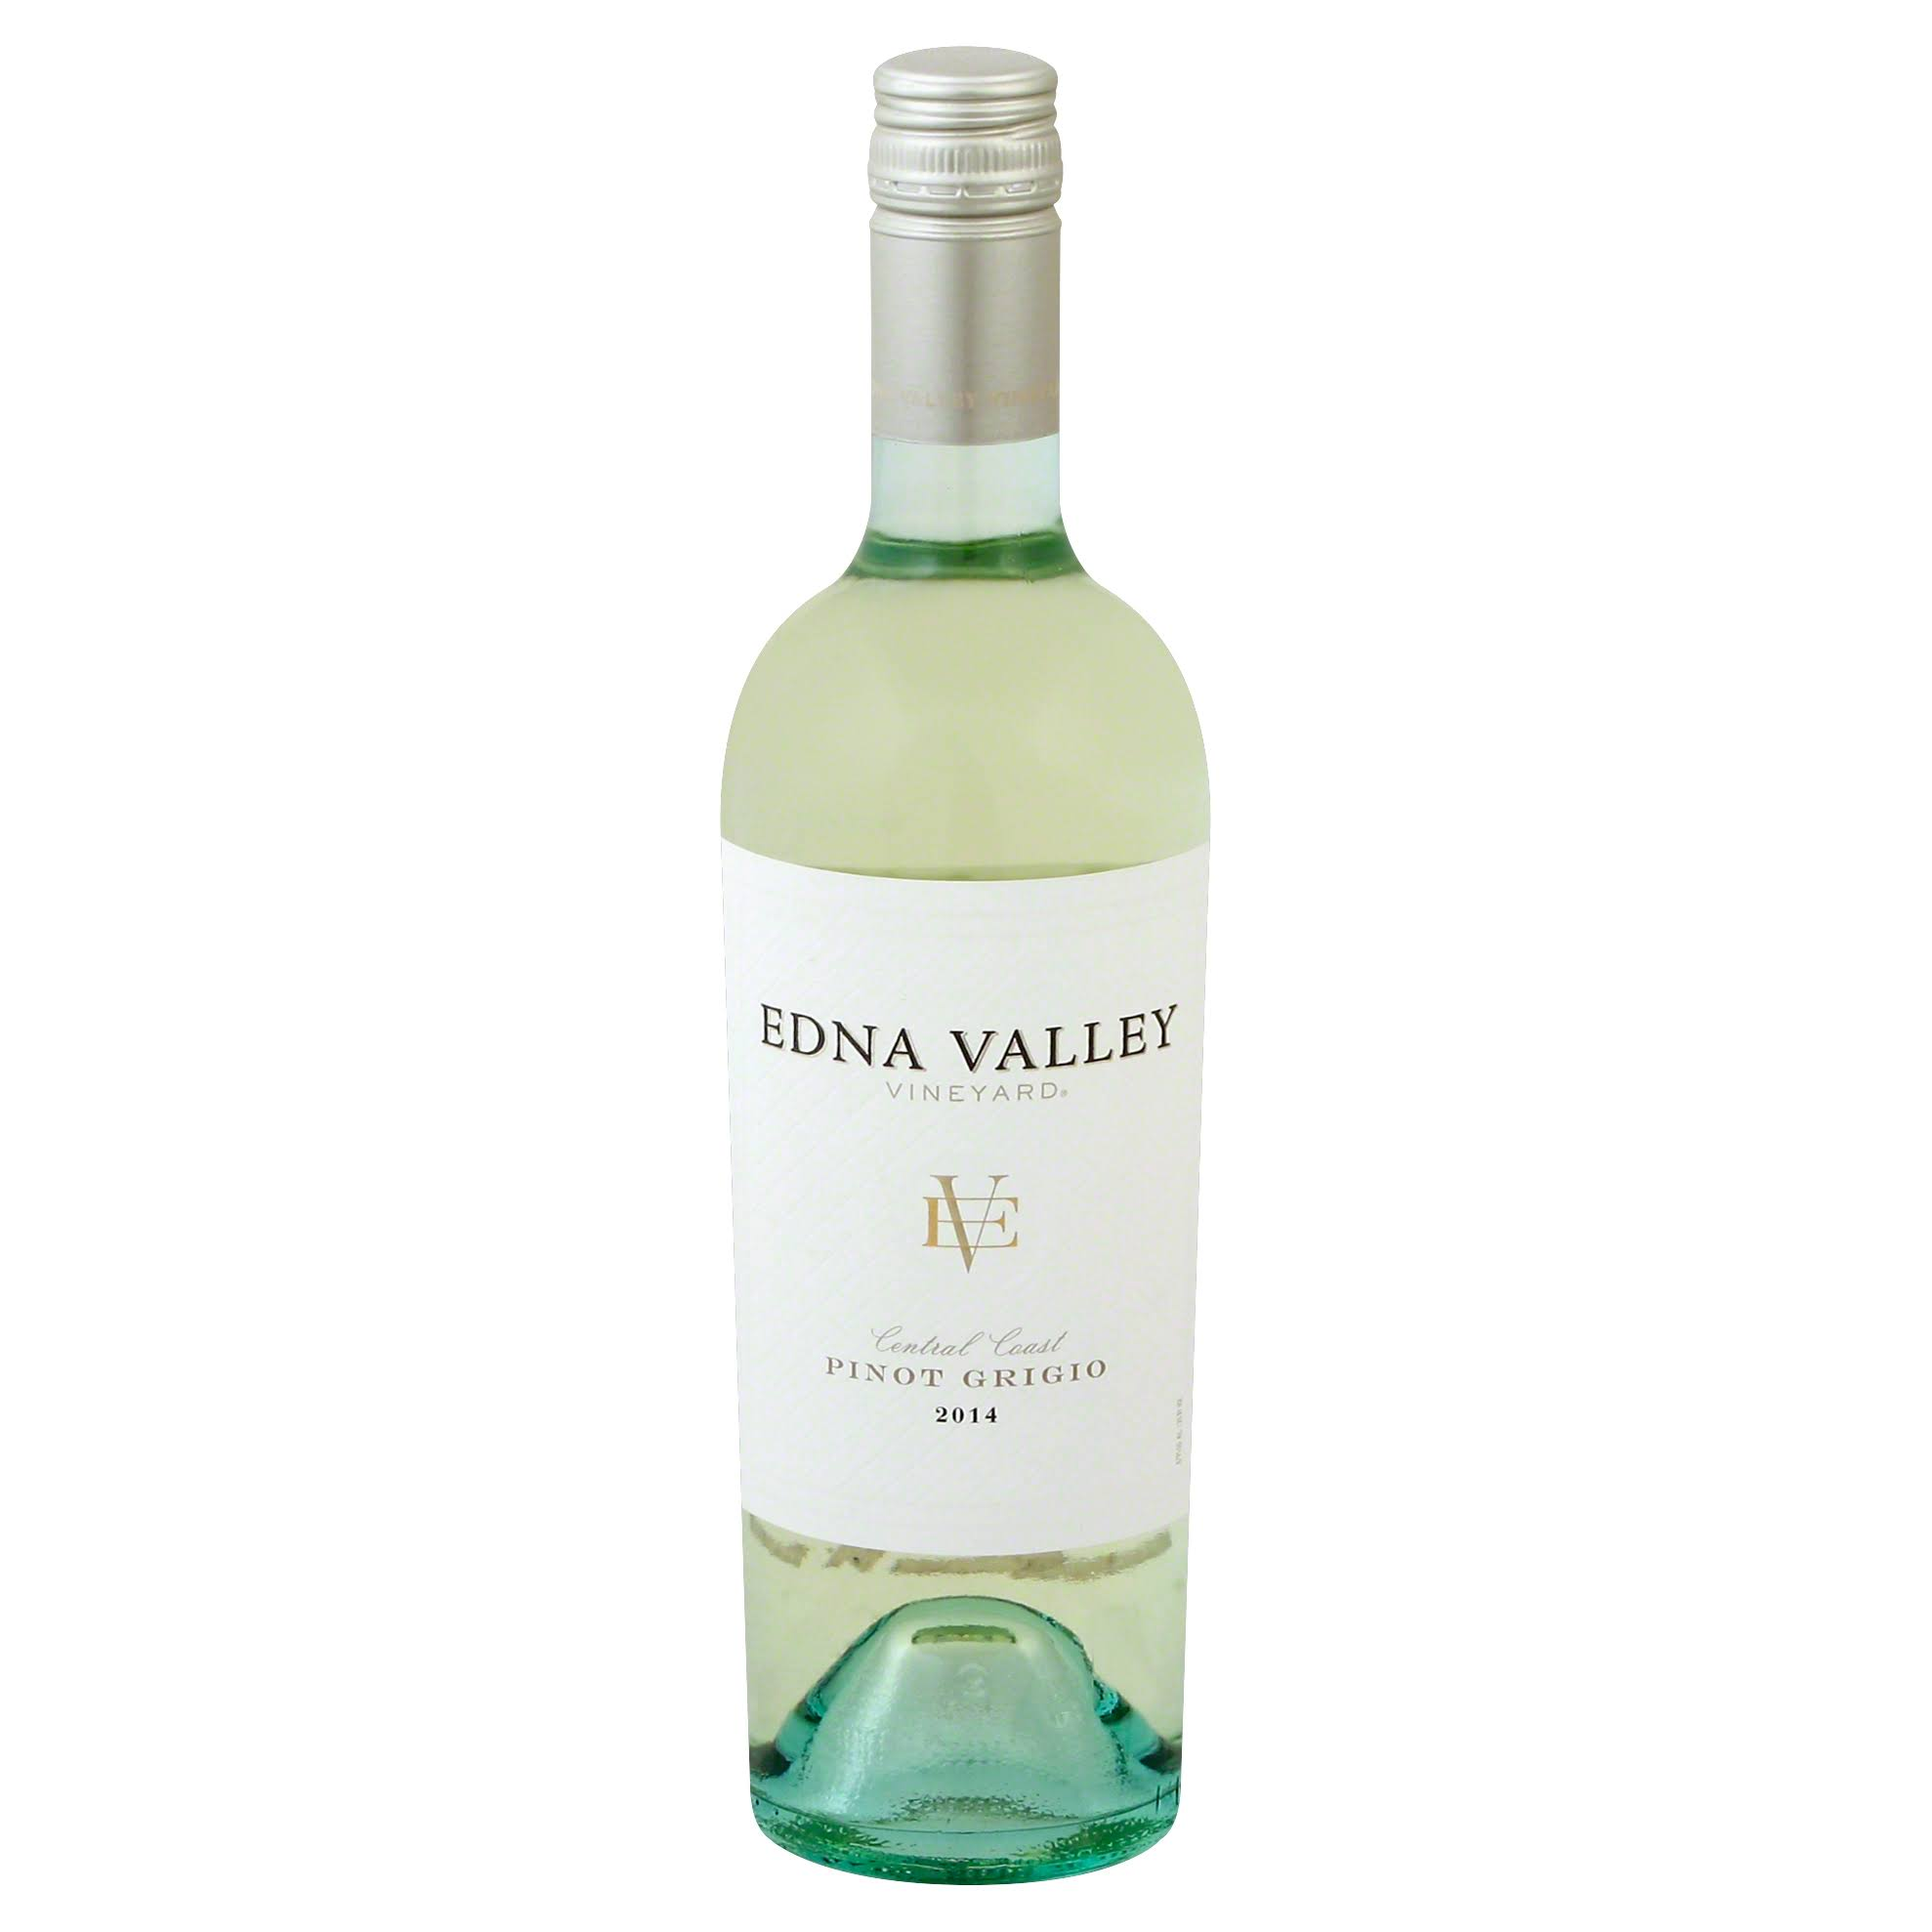 Edna Valley Vineyard Pinot Grigio, Central Coast, 2014 - 750 ml